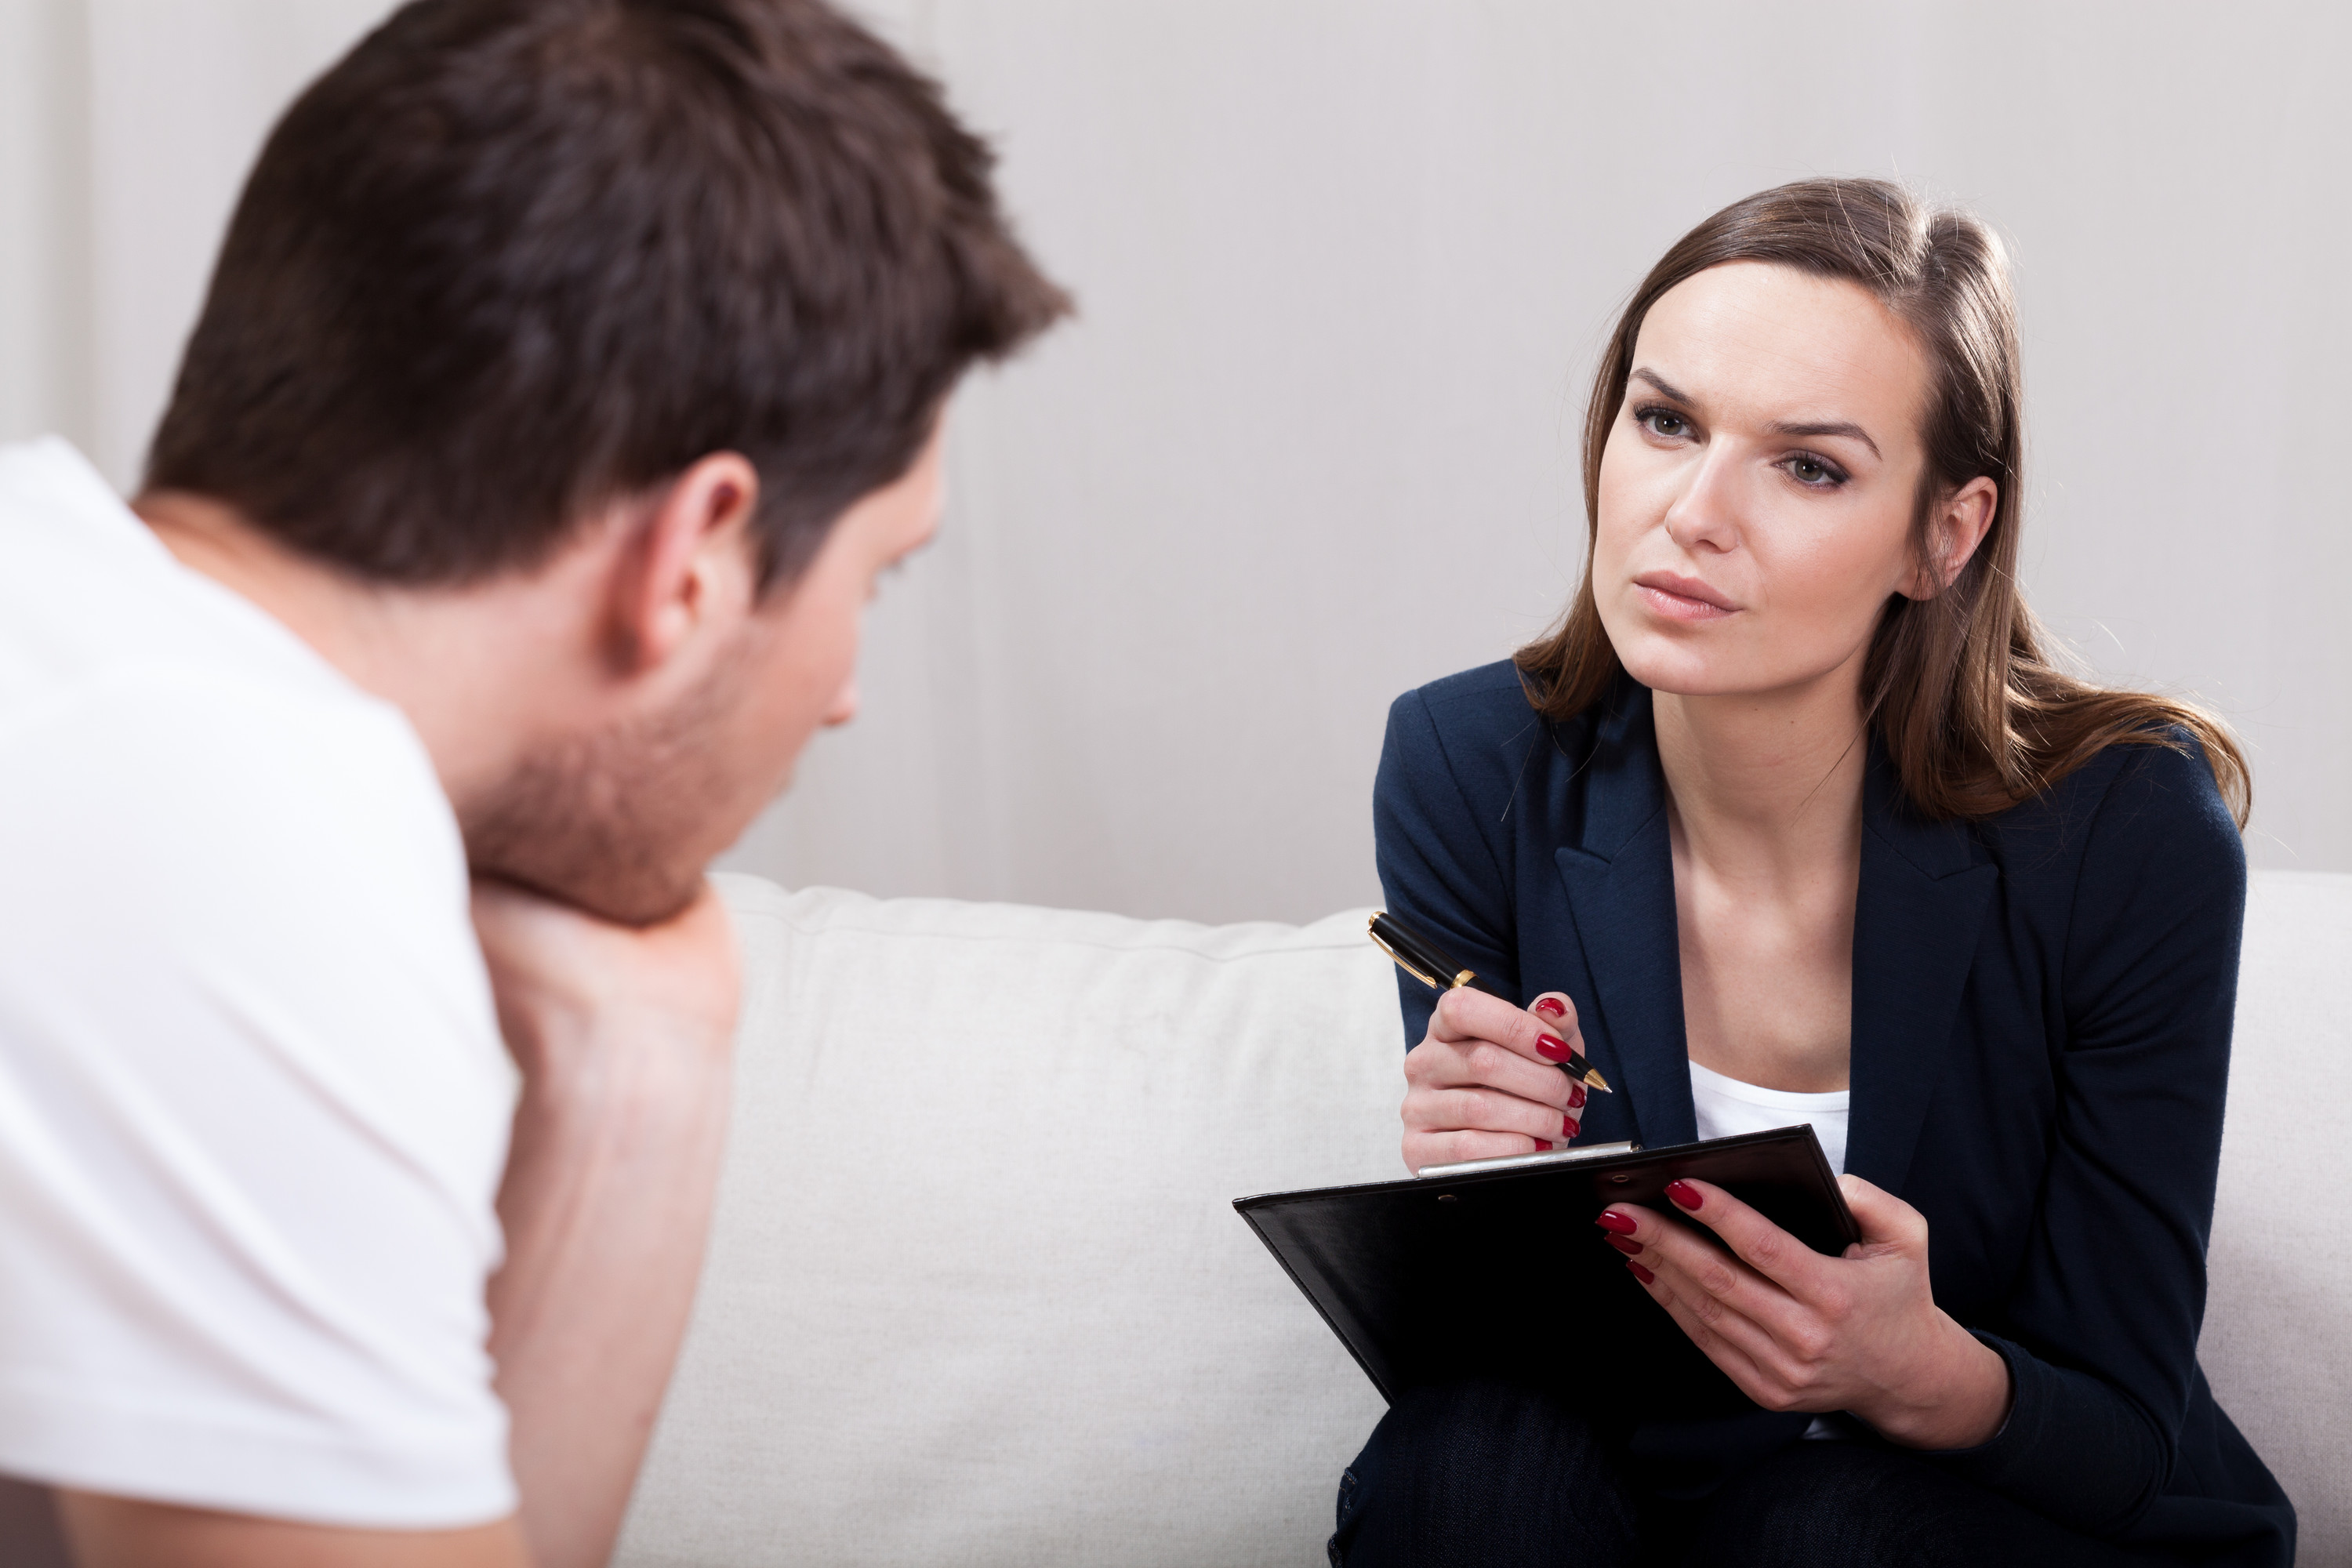 Lady Counselor 21821624